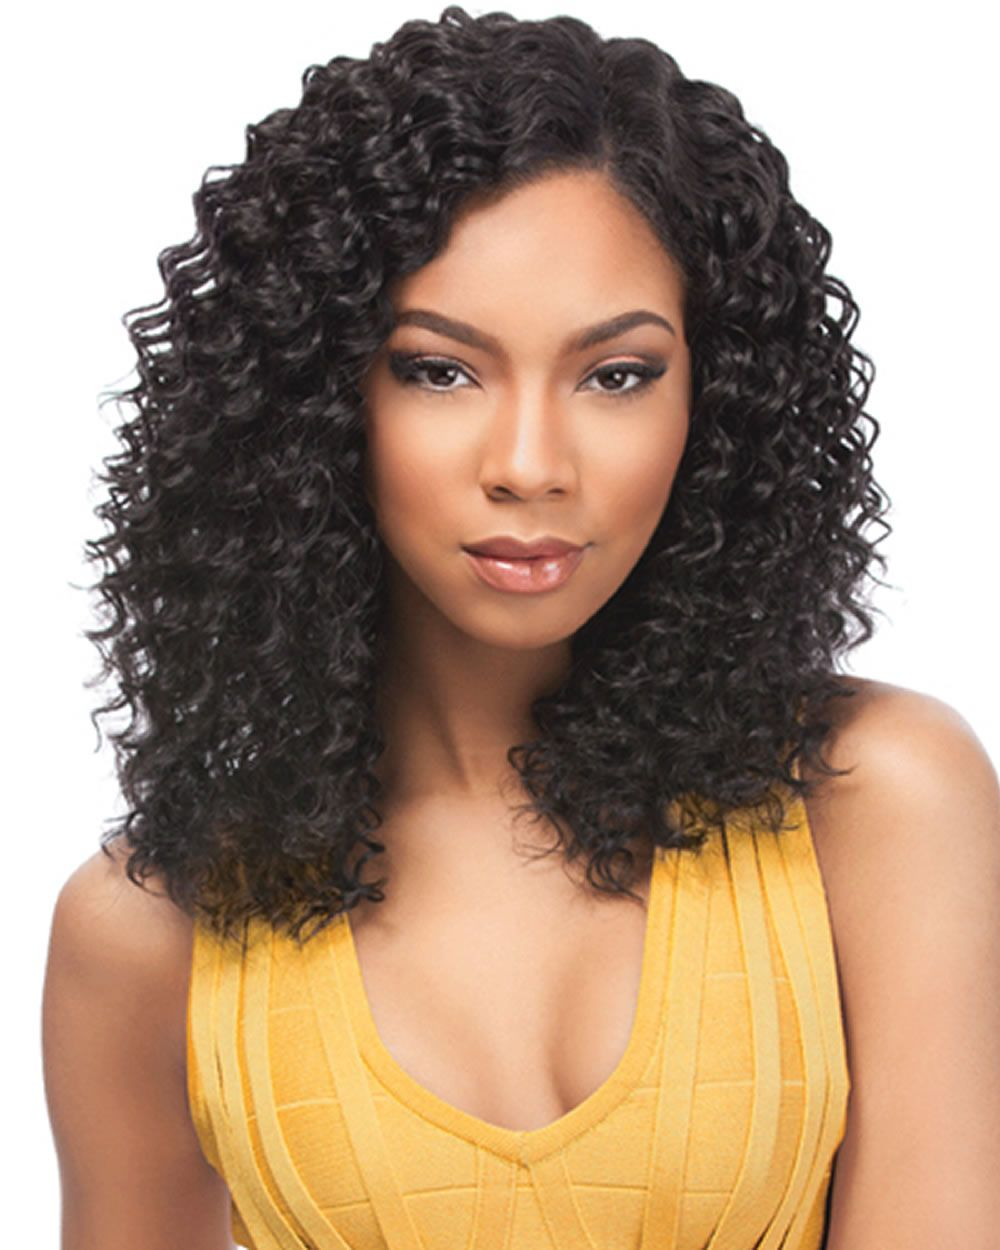 Natural Hairstyles for African American Women | Natural ...